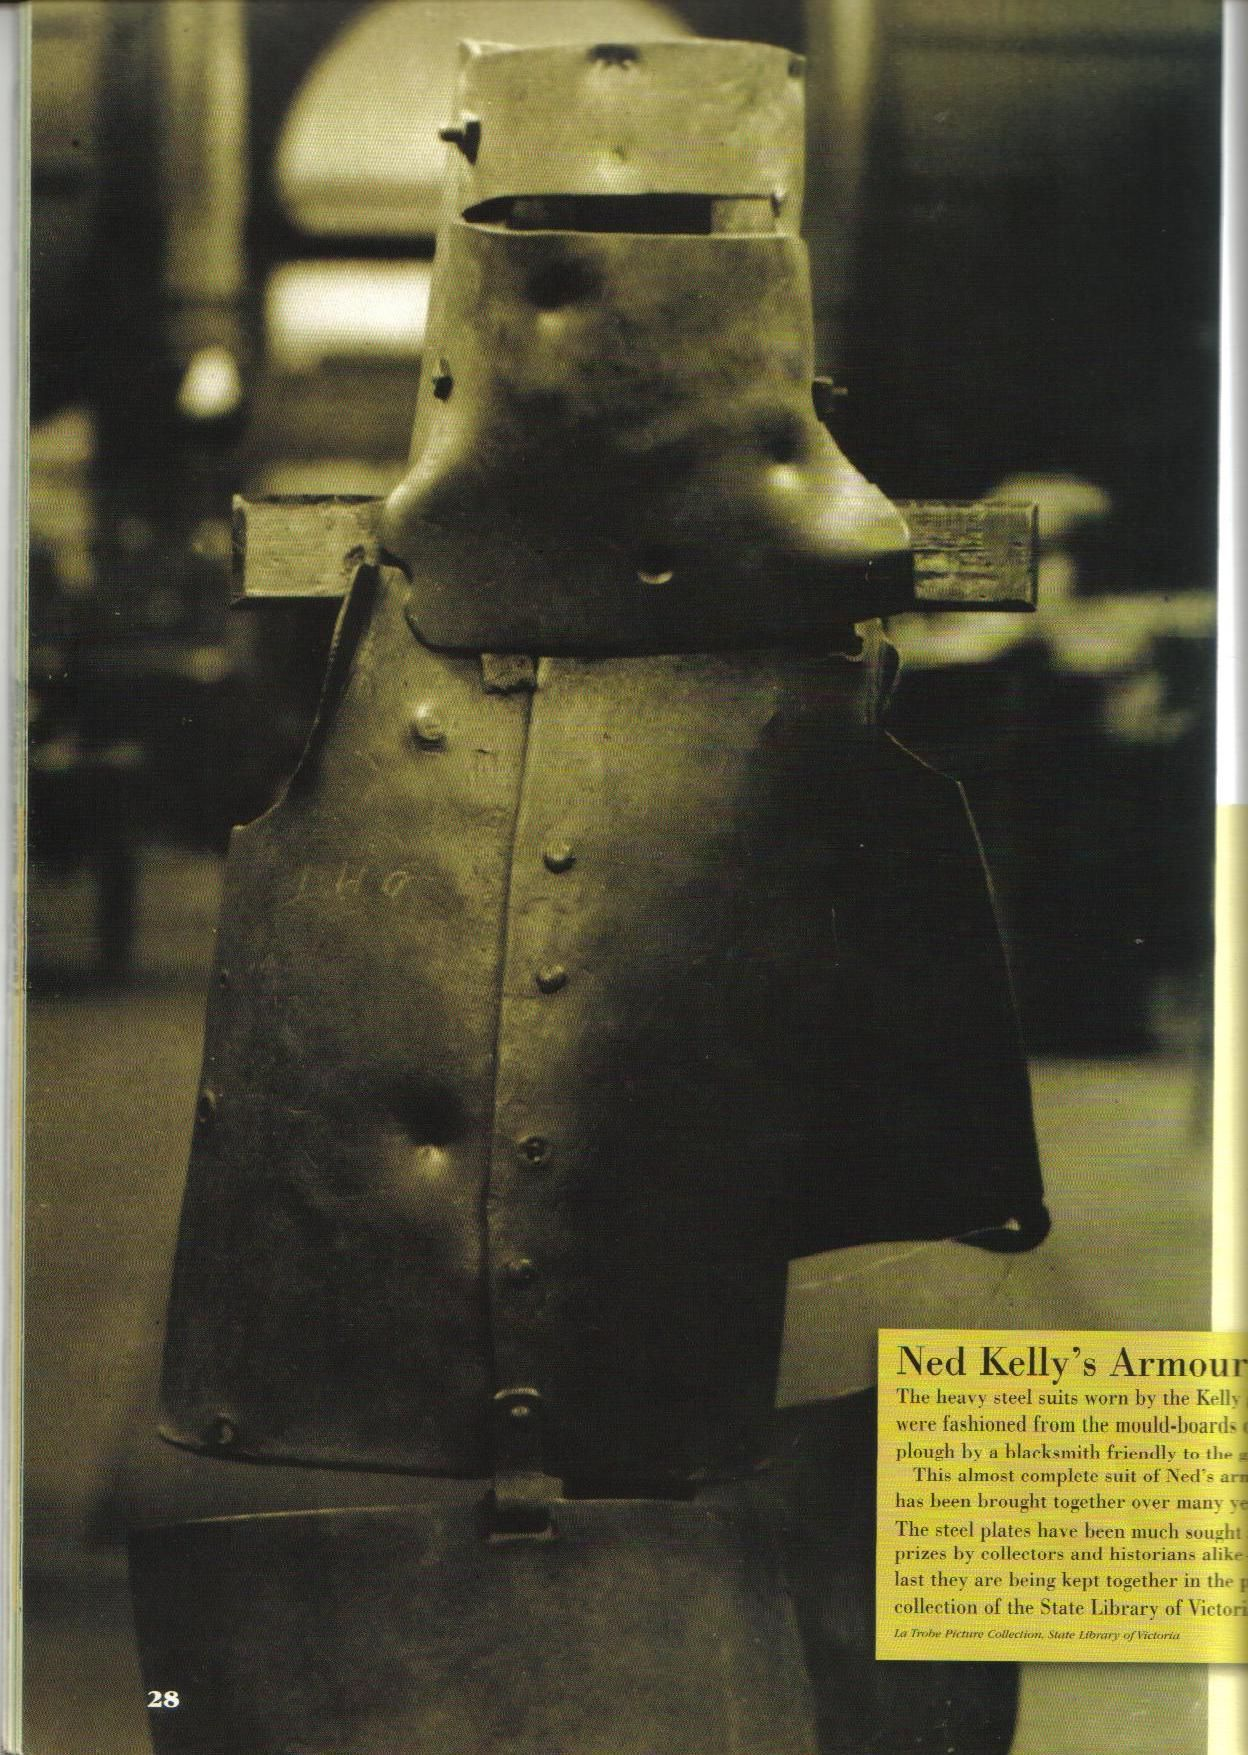 Kelly gang armour ned kellys full suit complete with bullet dents kelly gang armour ned kellys full suit complete with bullet dents pronofoot35fo Images